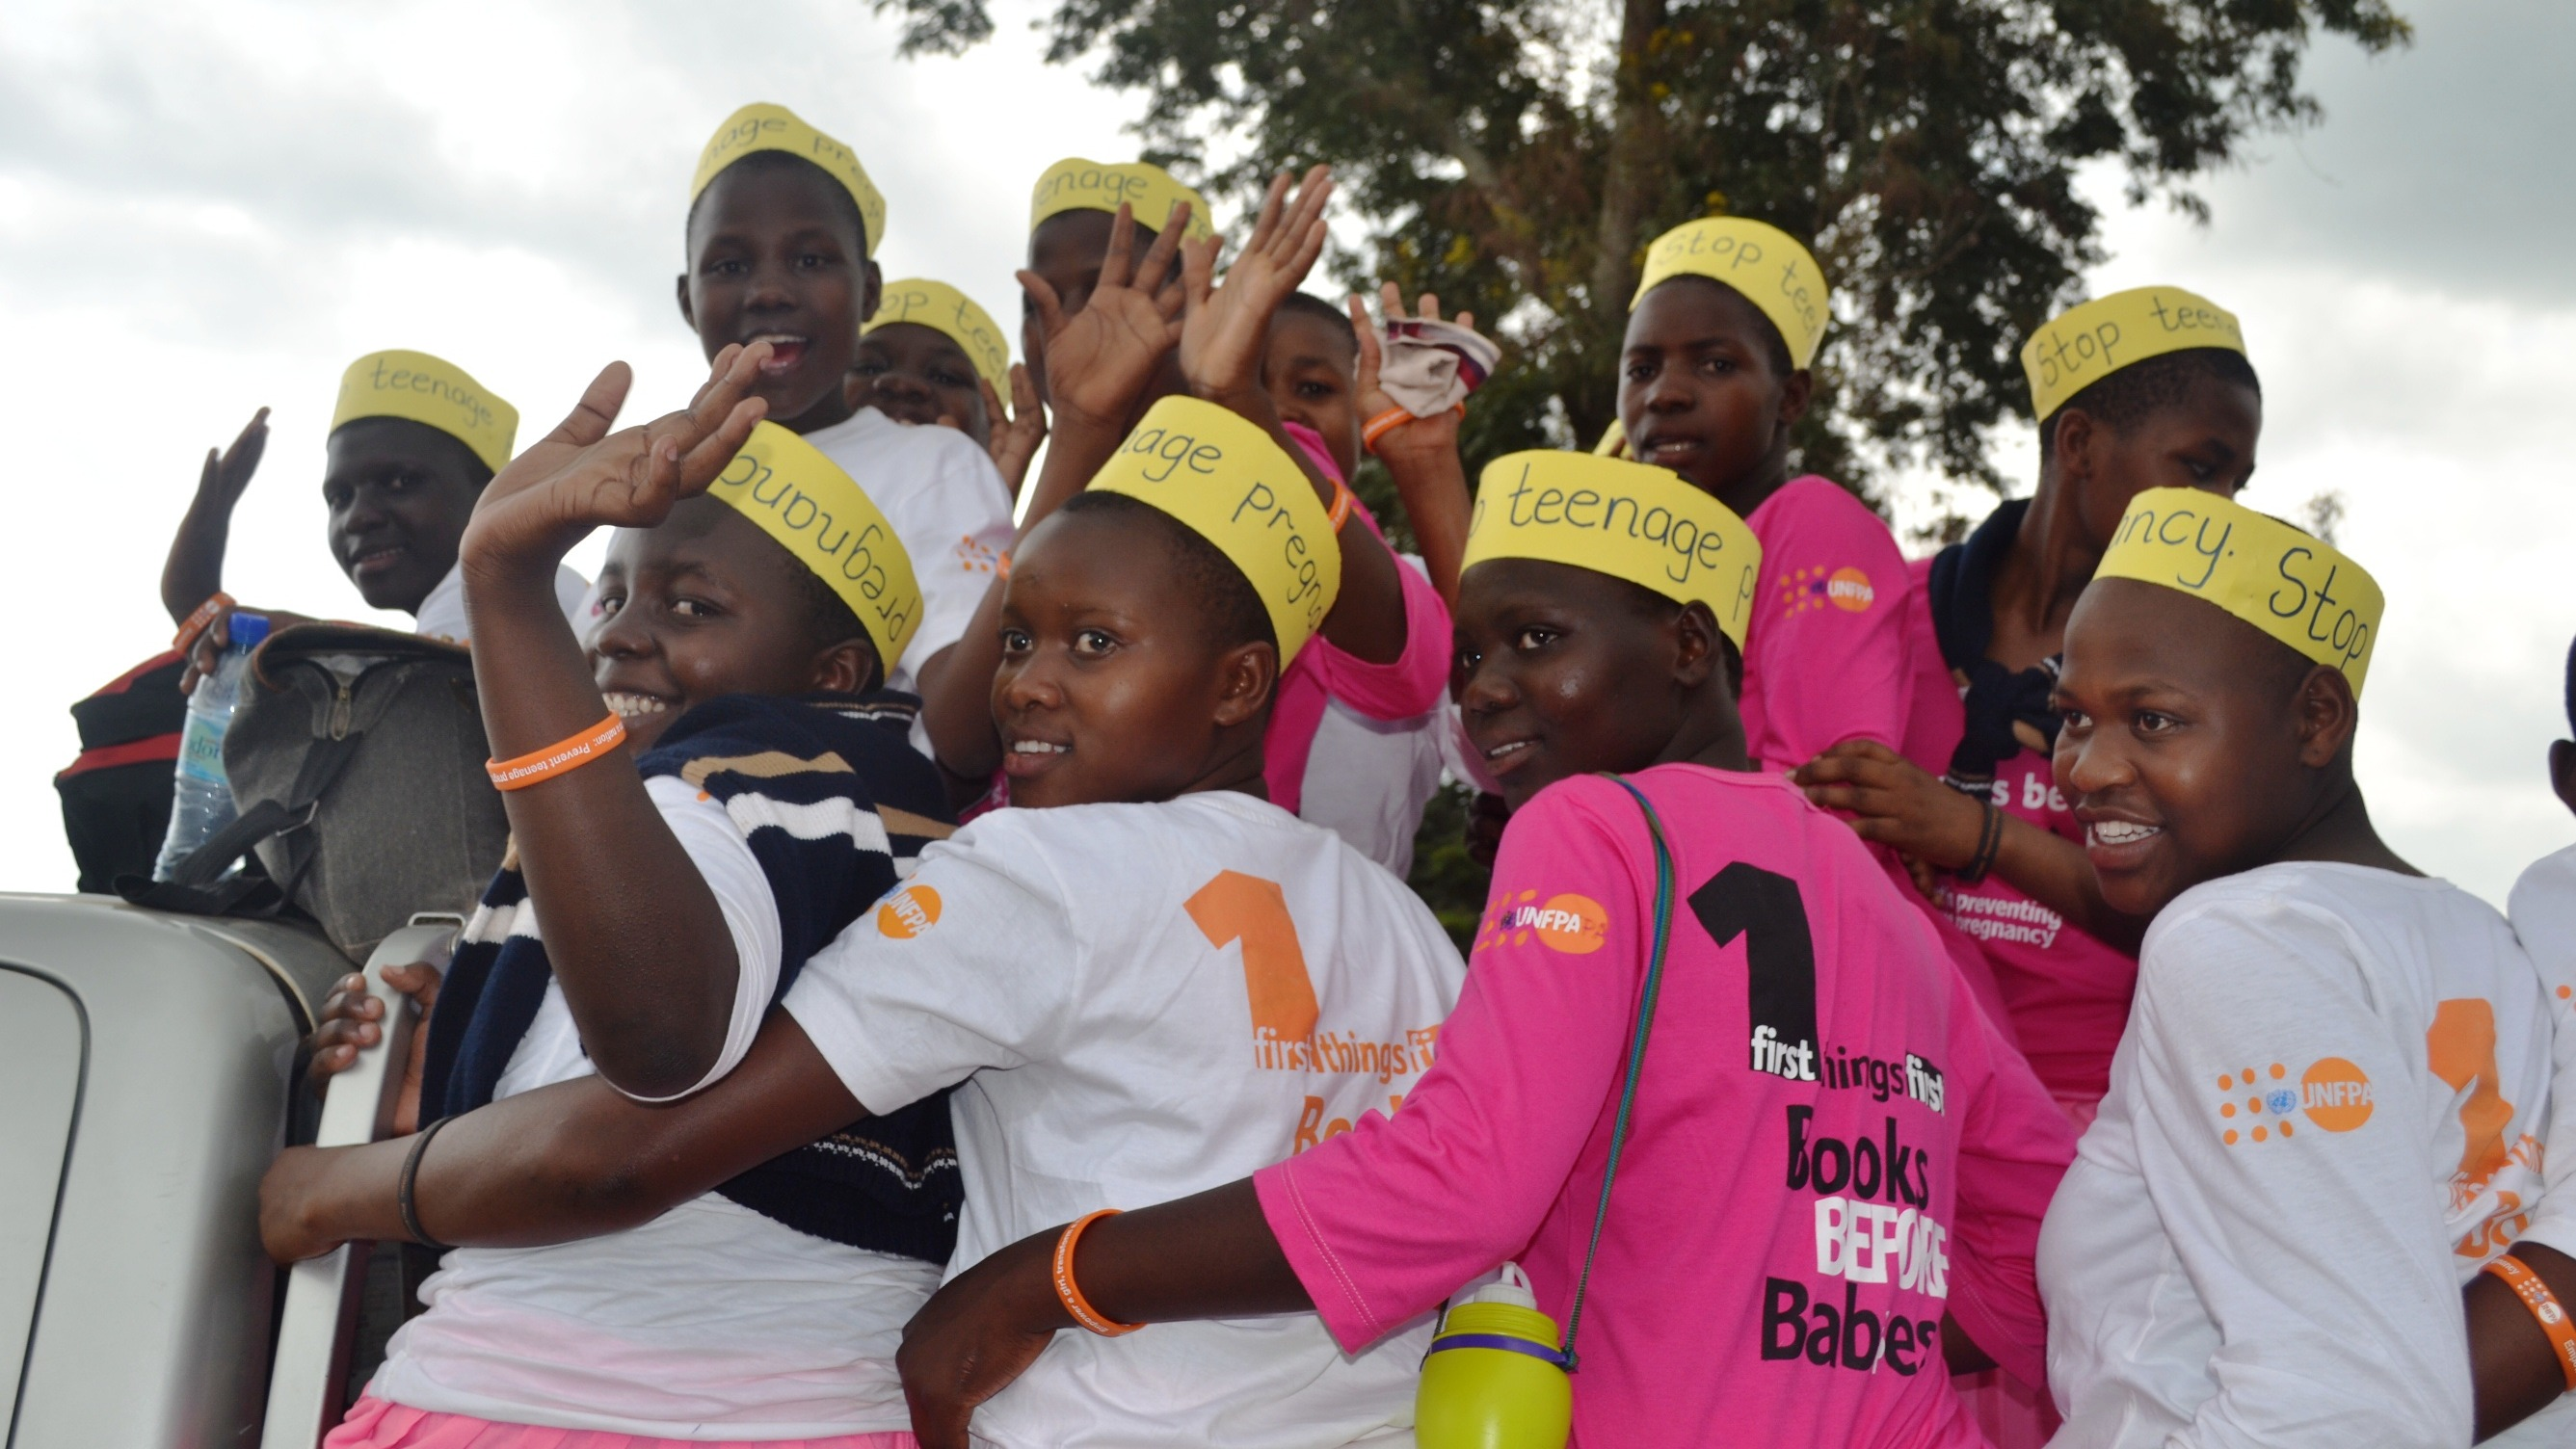 Students from Dube Primary School in Uganda at the launch of a joint UNFPA-Ugandan government year-long programme to curb teen pregnancy rates in Uganda.